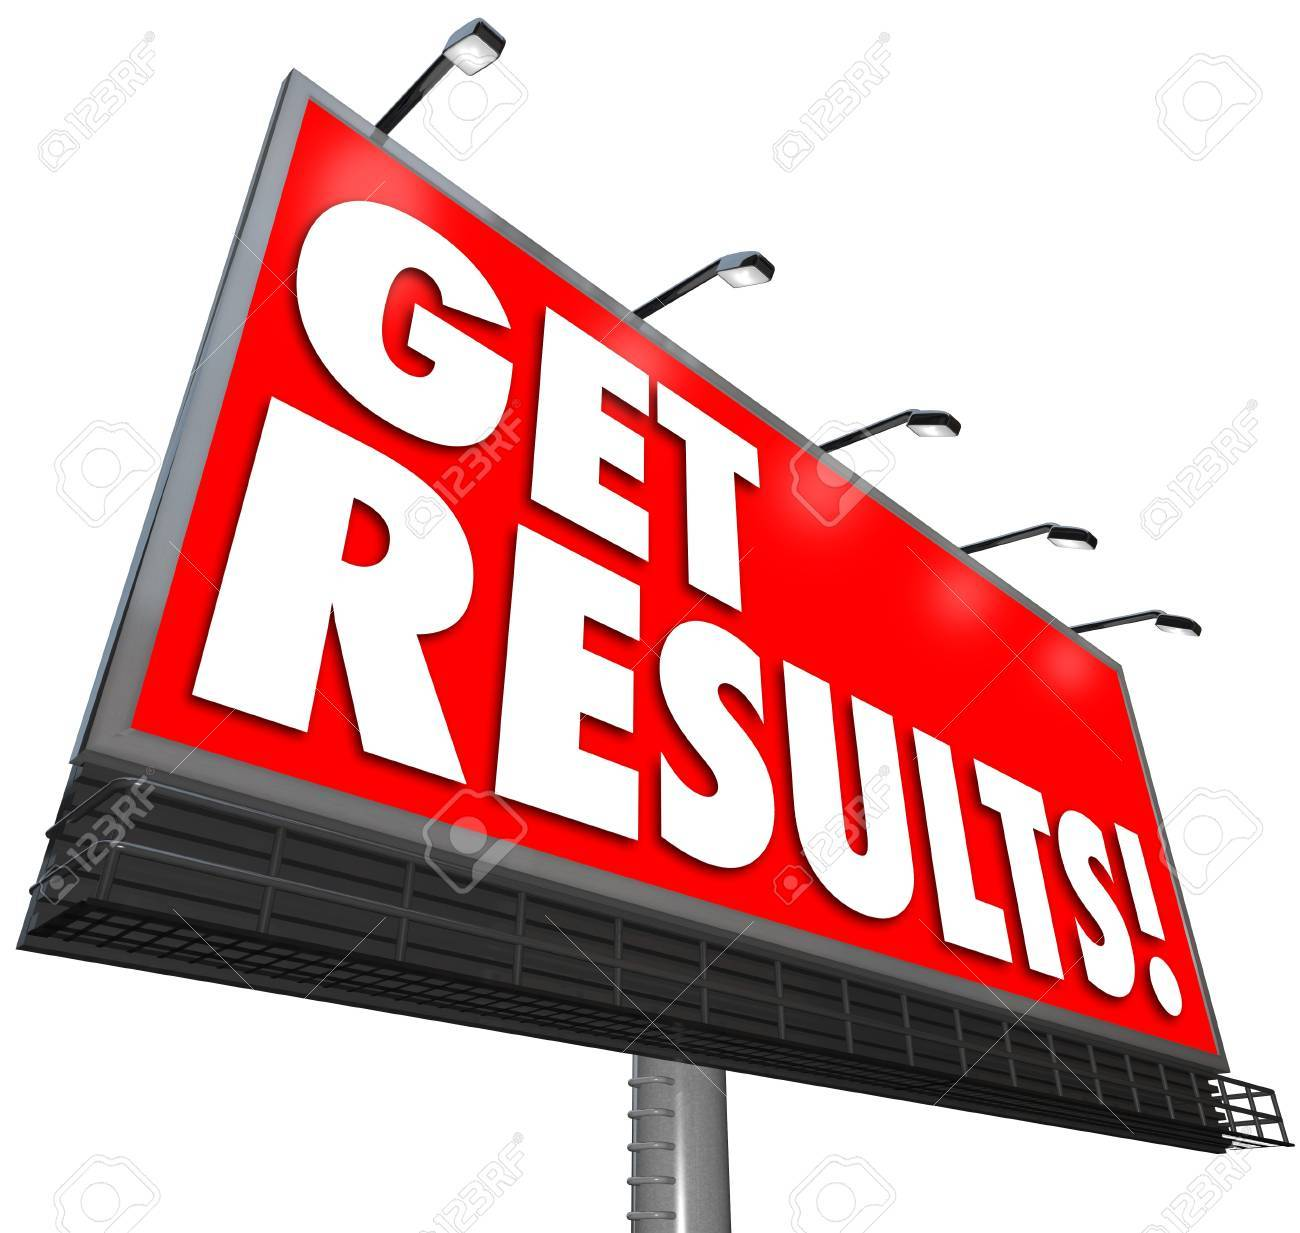 Get Results on a red billboard advertisement sign promising a guaranteed success in achieving a goal and implementing an effective strategy Stock Photo - 14877202